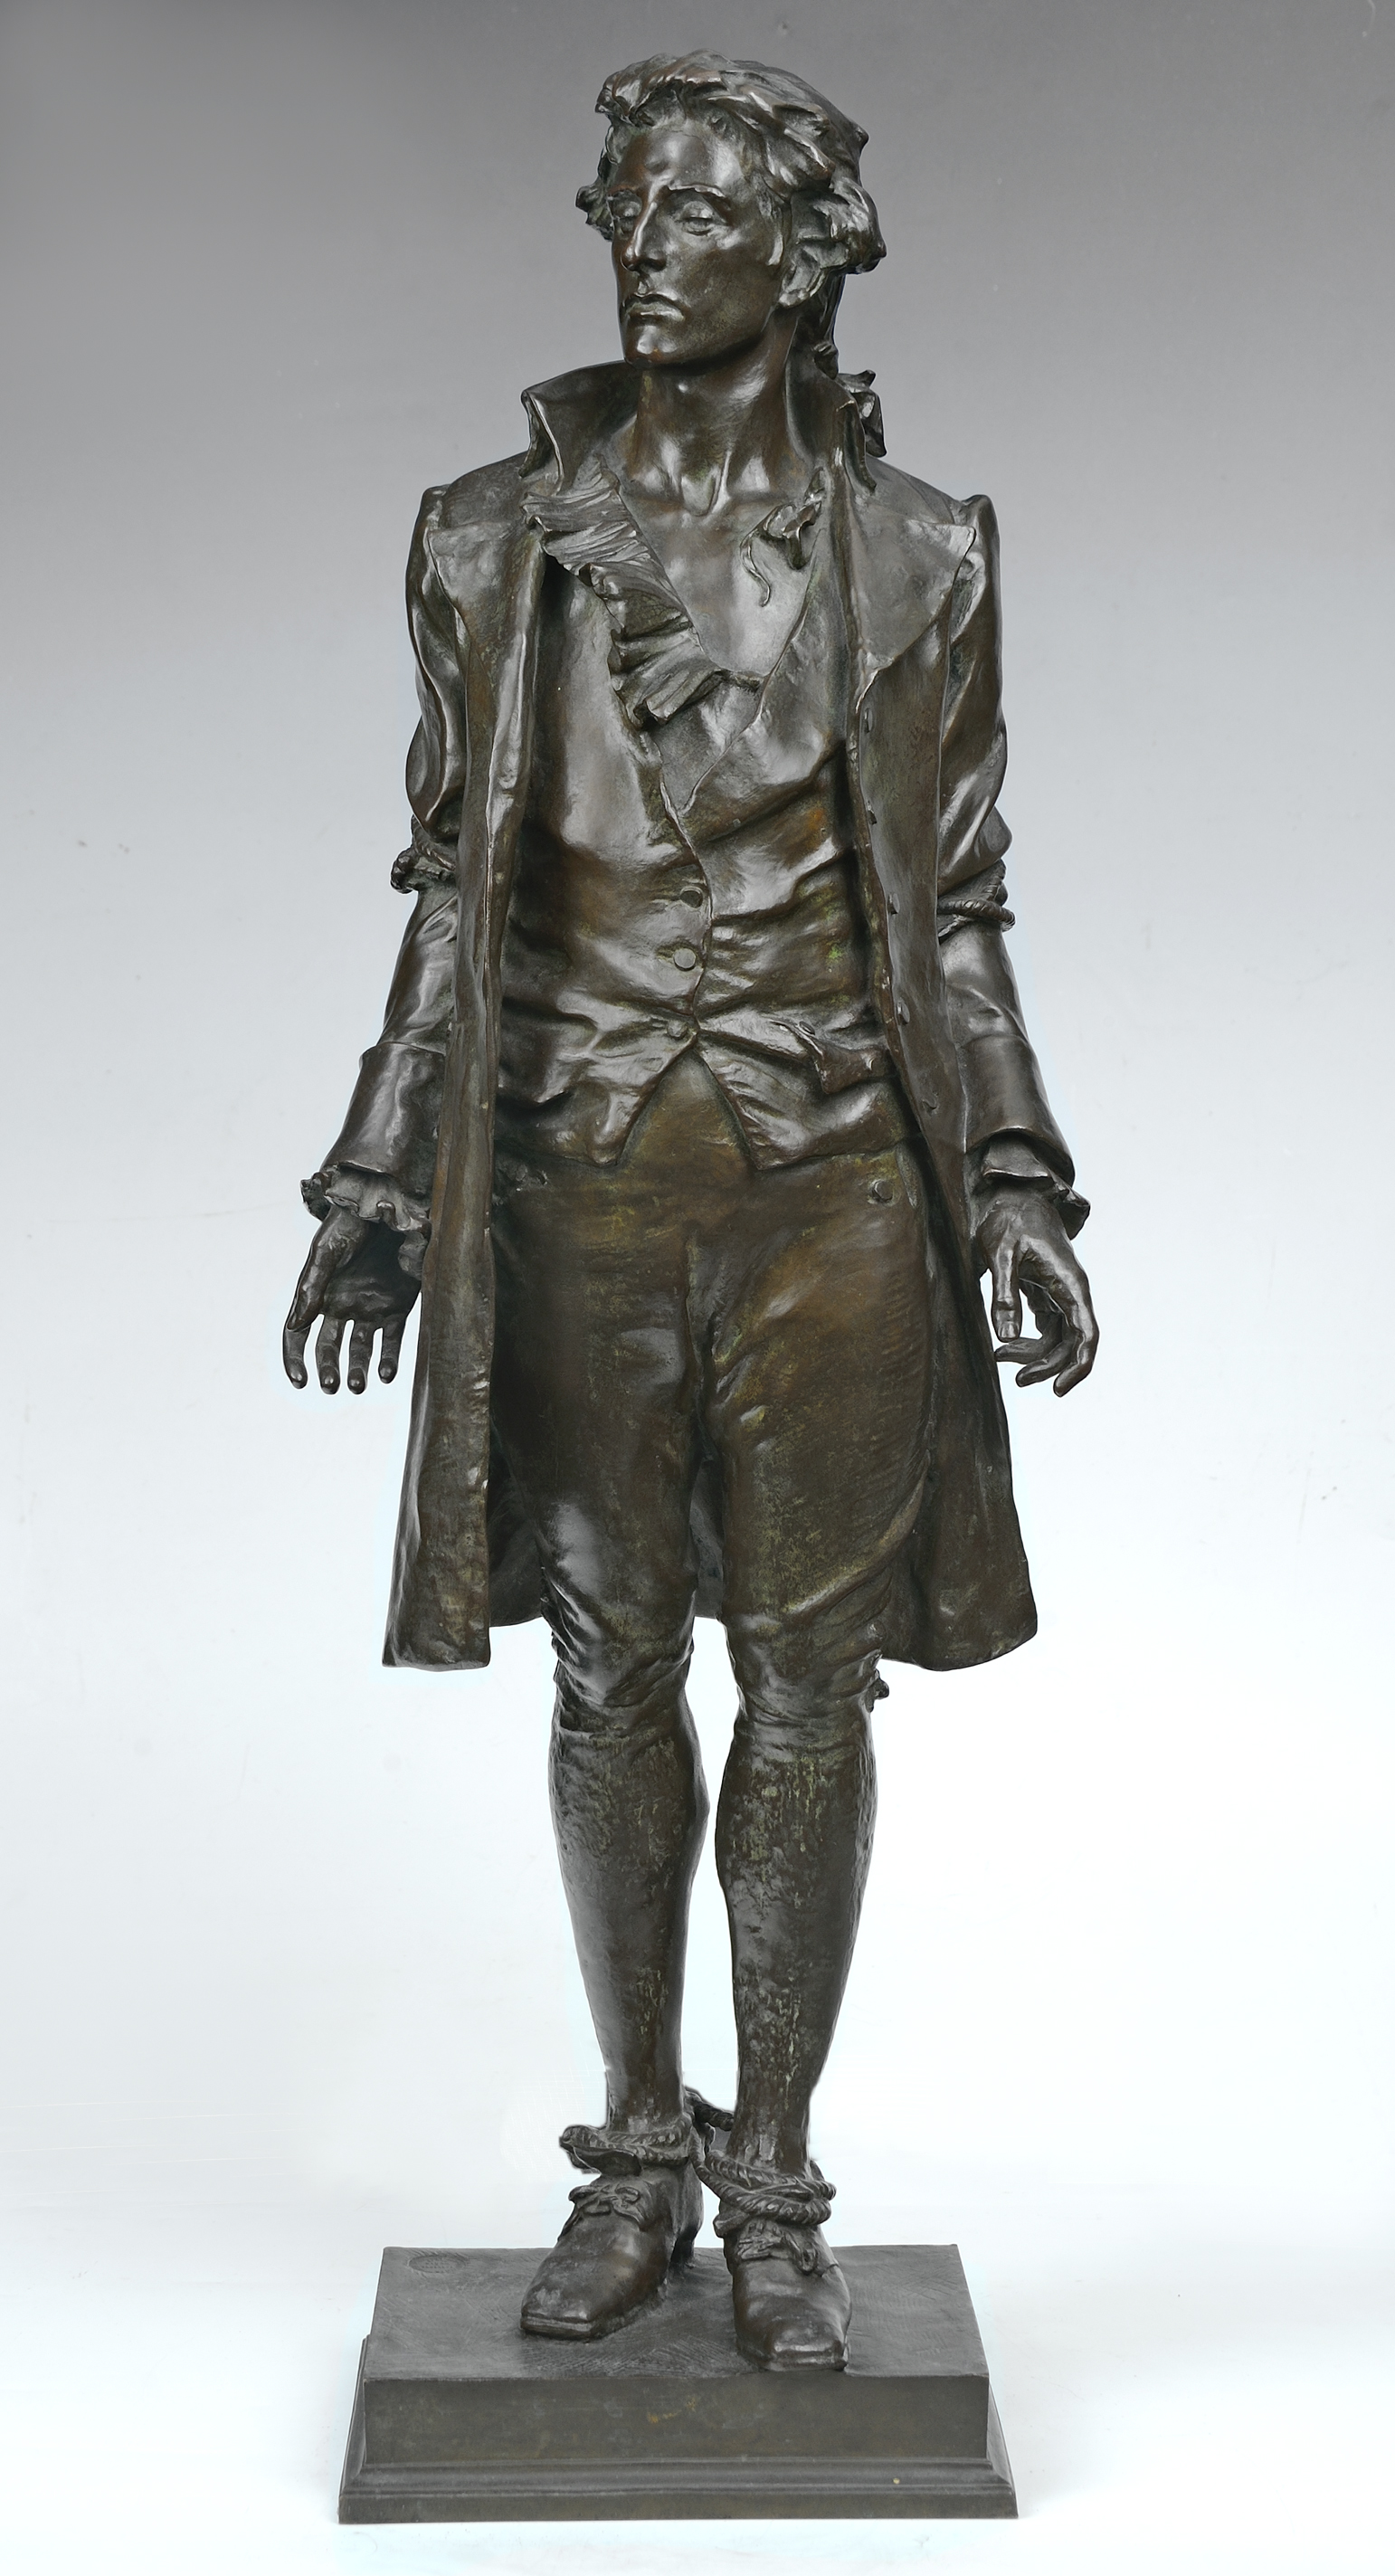 Nathan Hale statue by MacMonnies, ca. 1901-1917